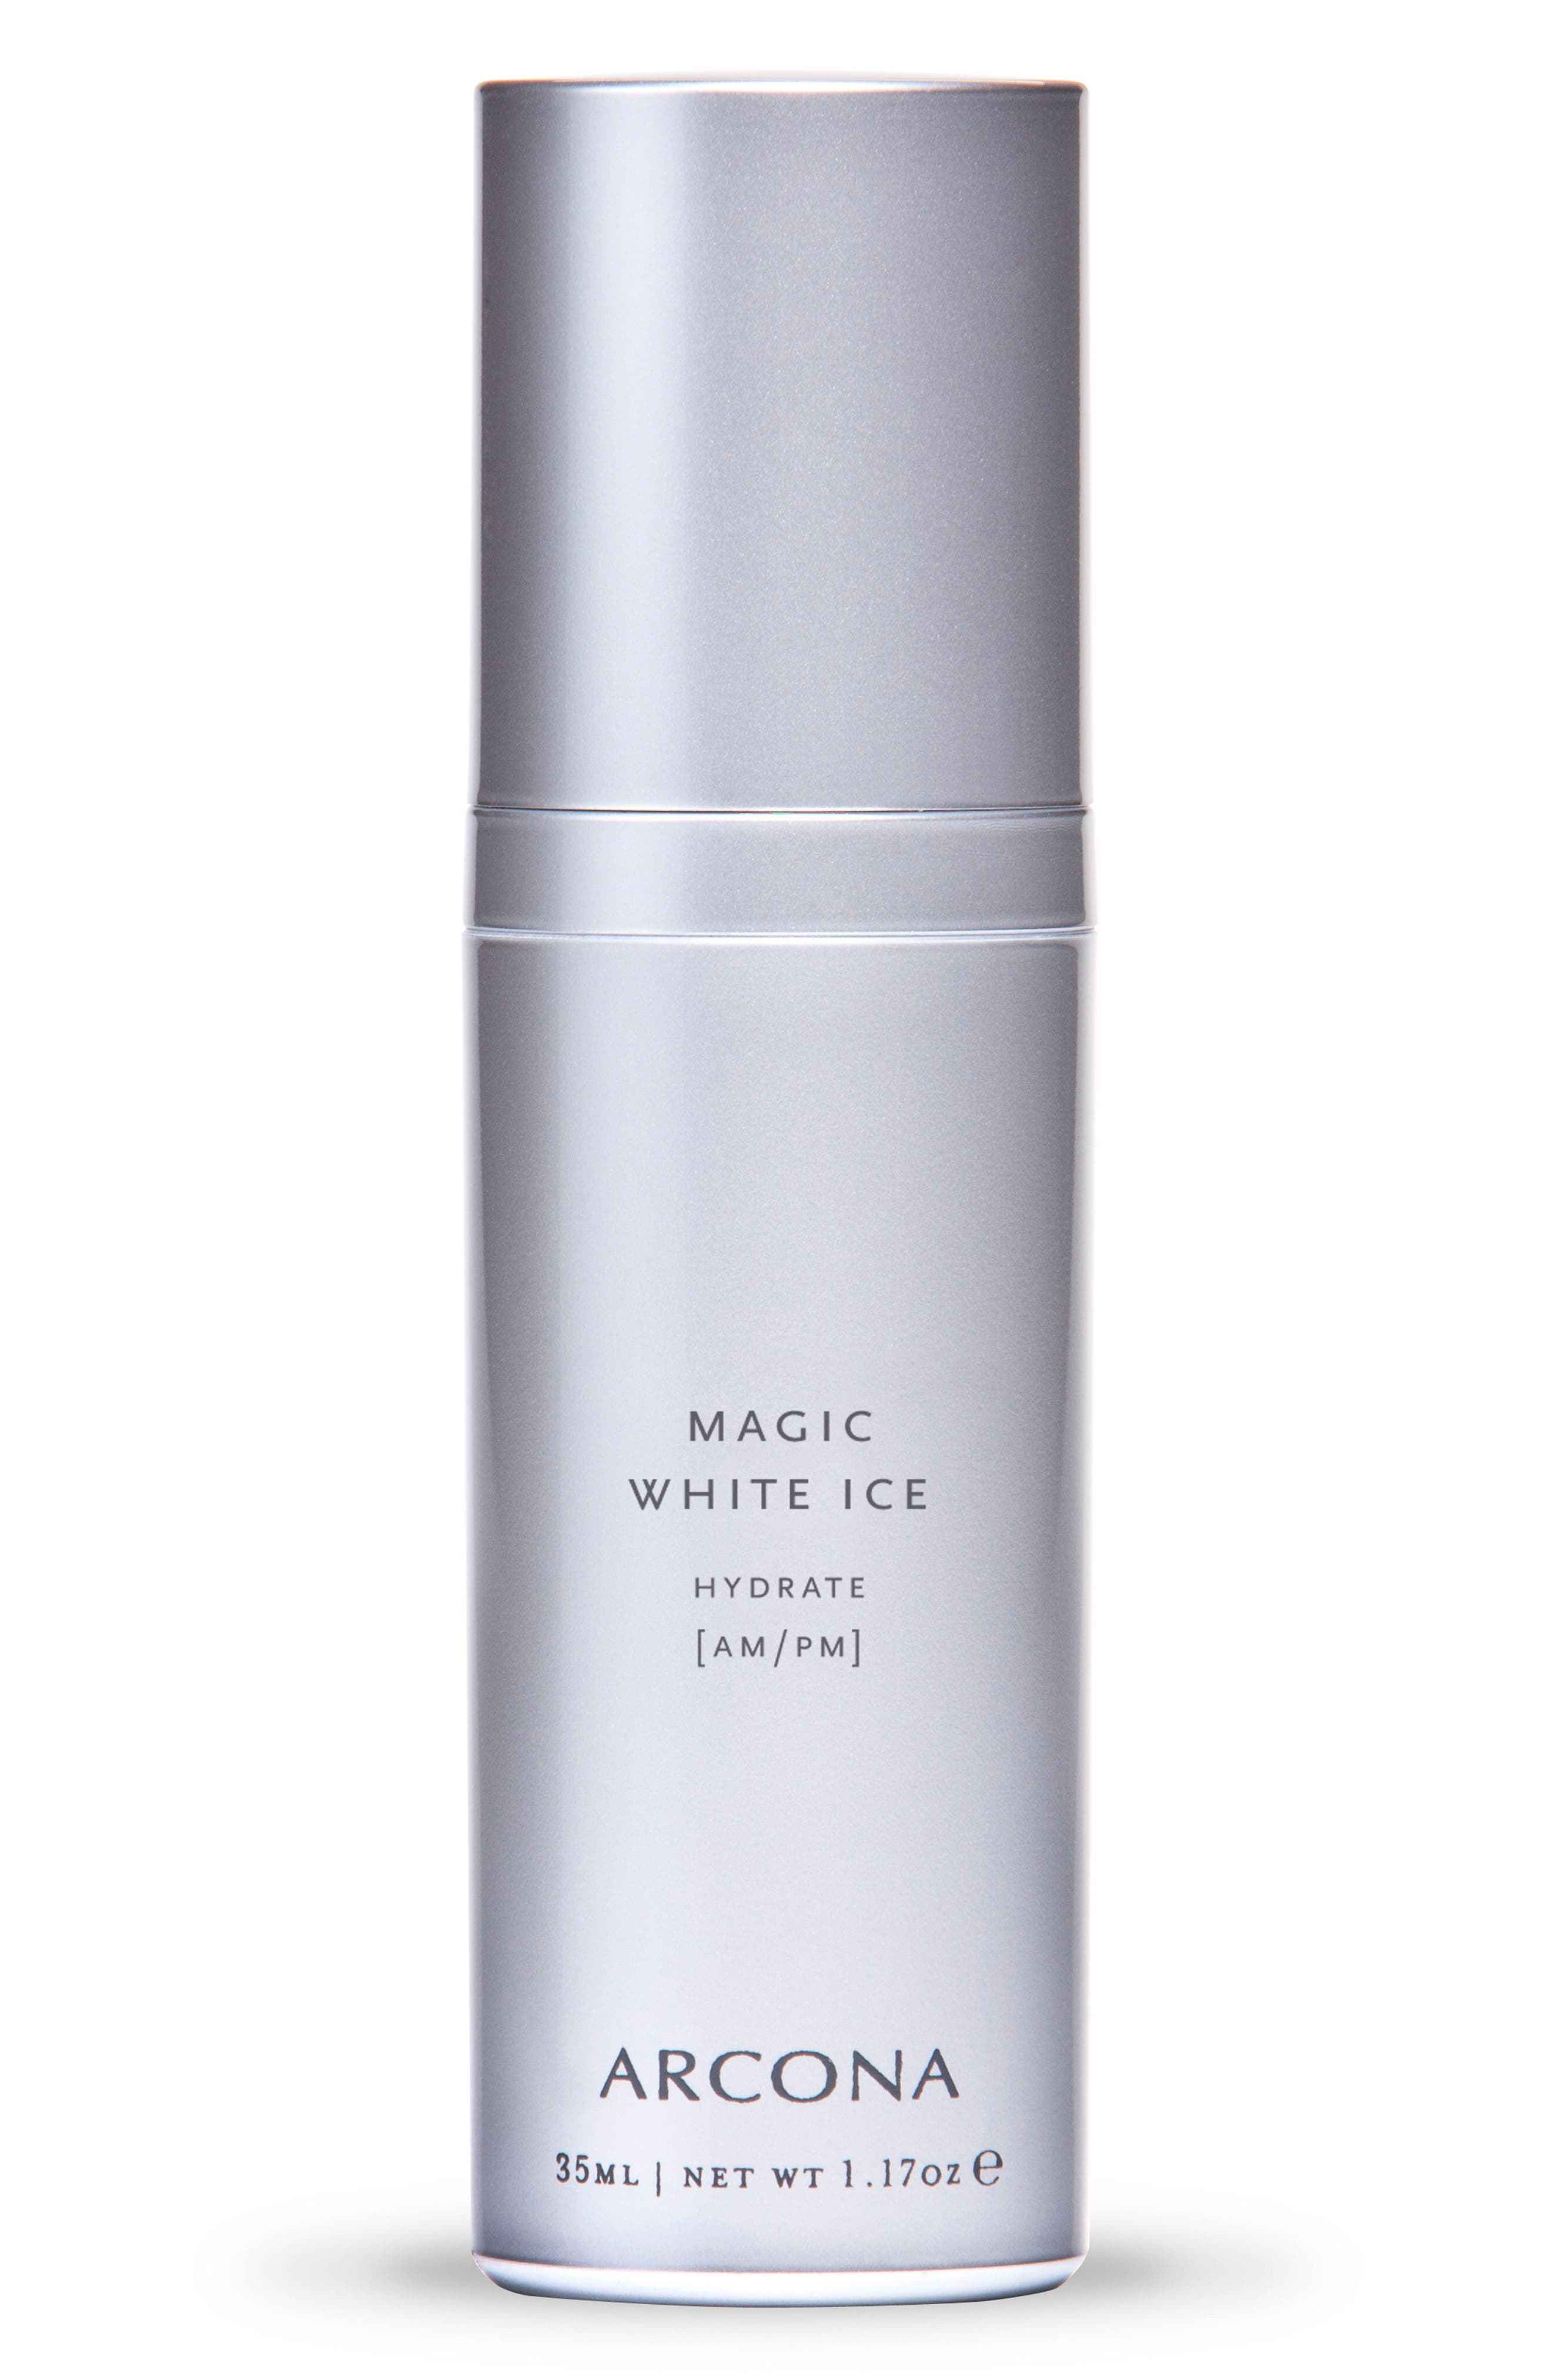 Alternate Image 1 Selected - ARCONA Magic White Ice Daily Hydrating Gel